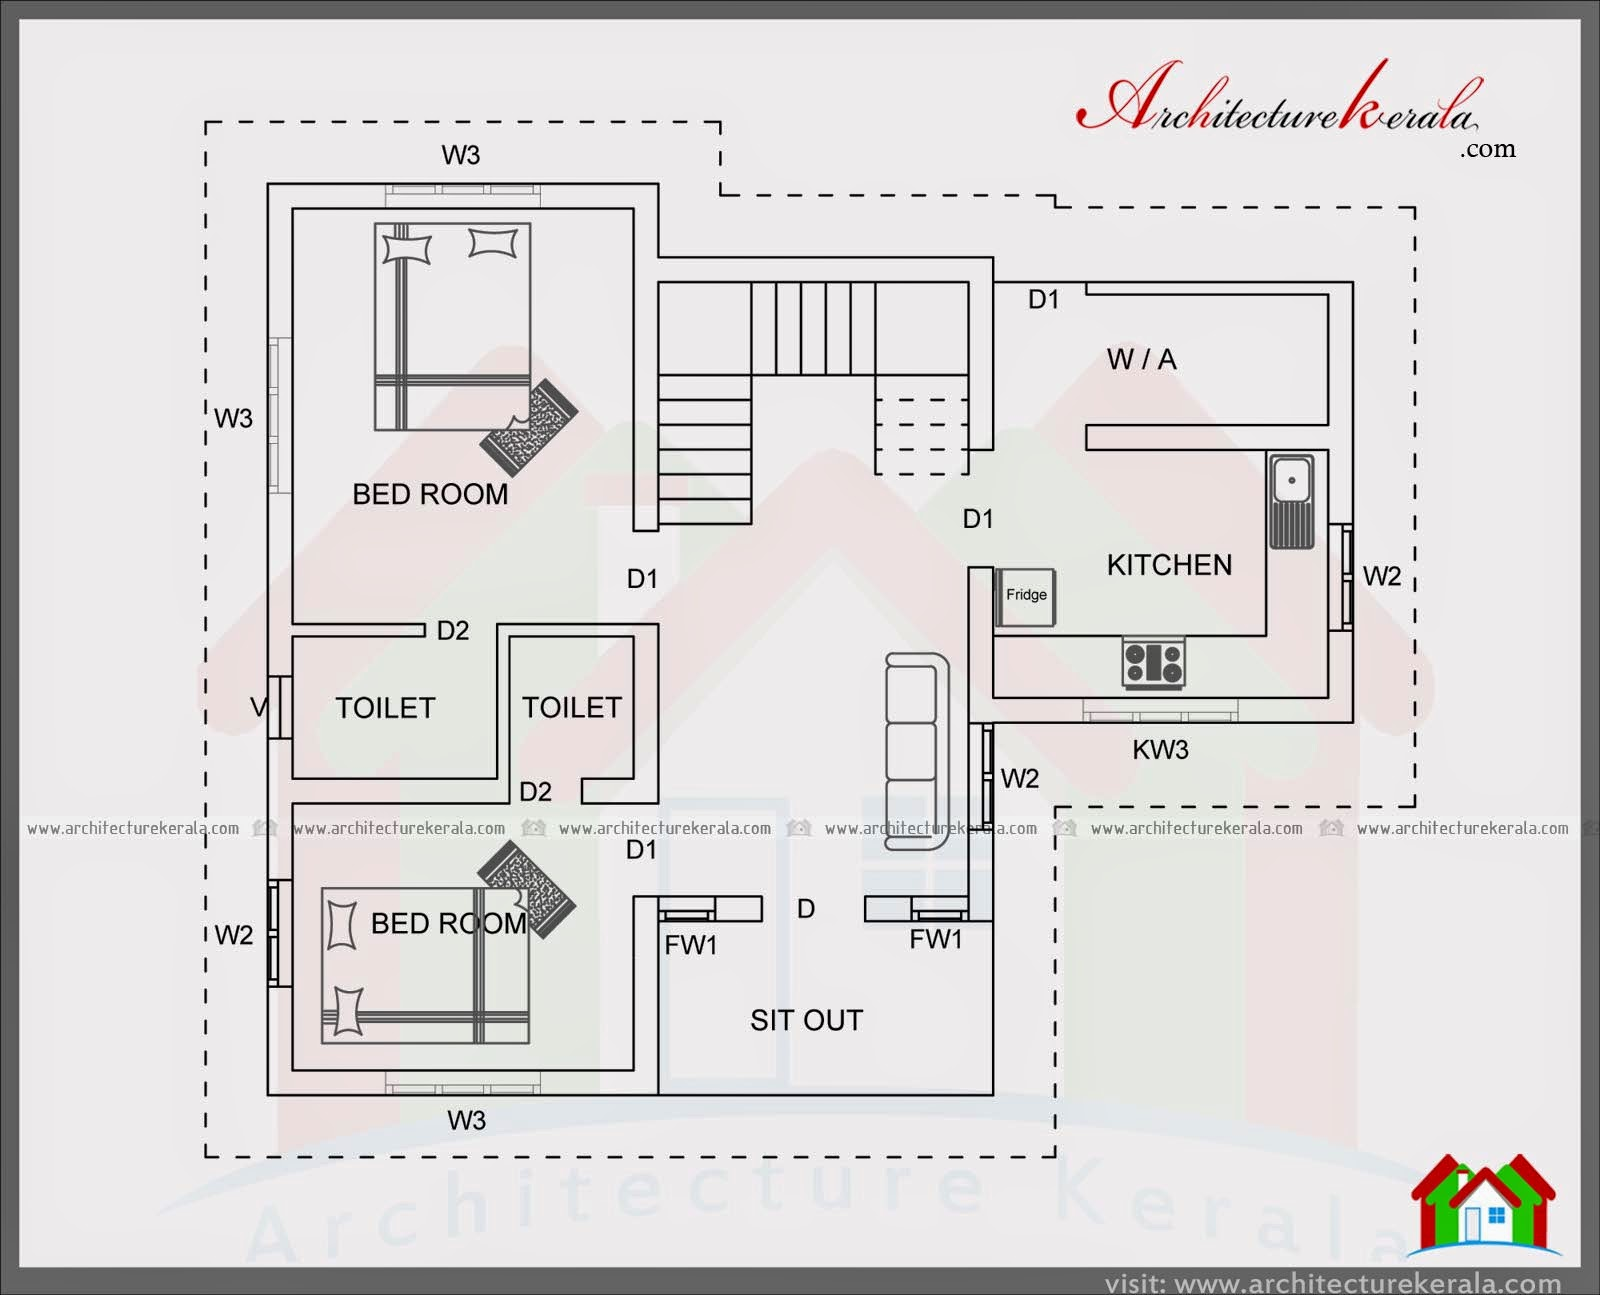 4 bedroom house plan in 1400 square feet architecture kerala Create house floor plans free